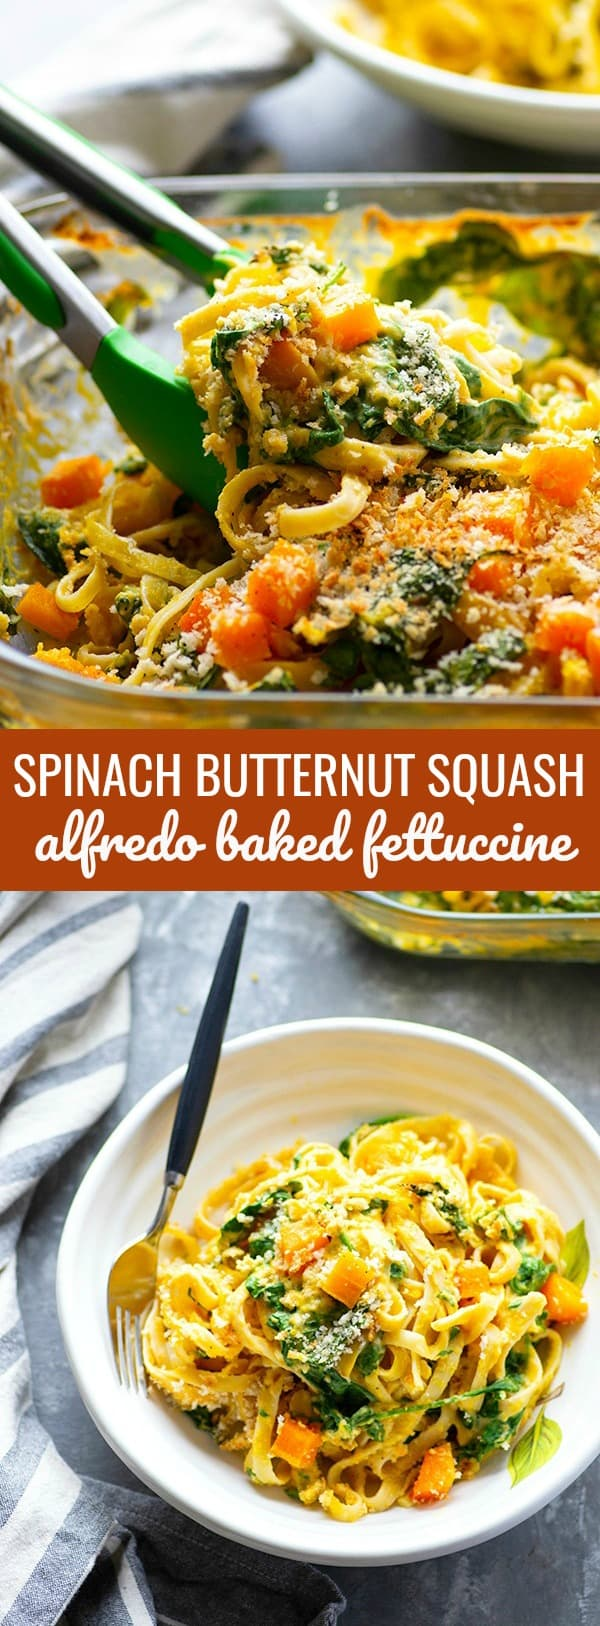 Fettuccine alfredo gets a fall upgrade with lots of tender baby spinach and a luxuriously creamy butternut squash alfredo sauce that's lighter on the calories!